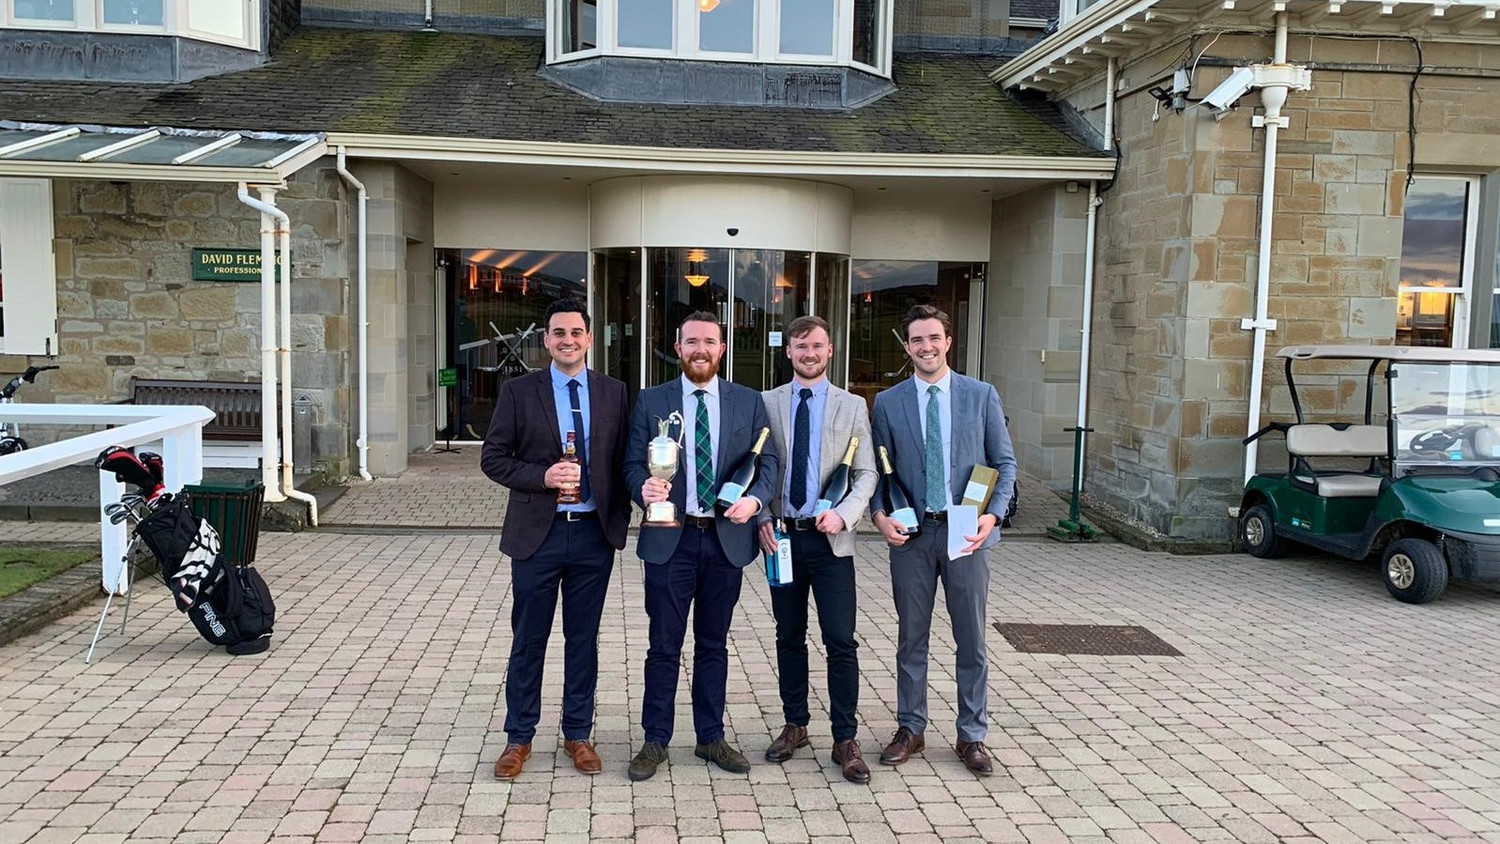 CRGP Outside Prestwick Golf Club after taking part in the Mental Health Foundation Golf Pro Am Competition